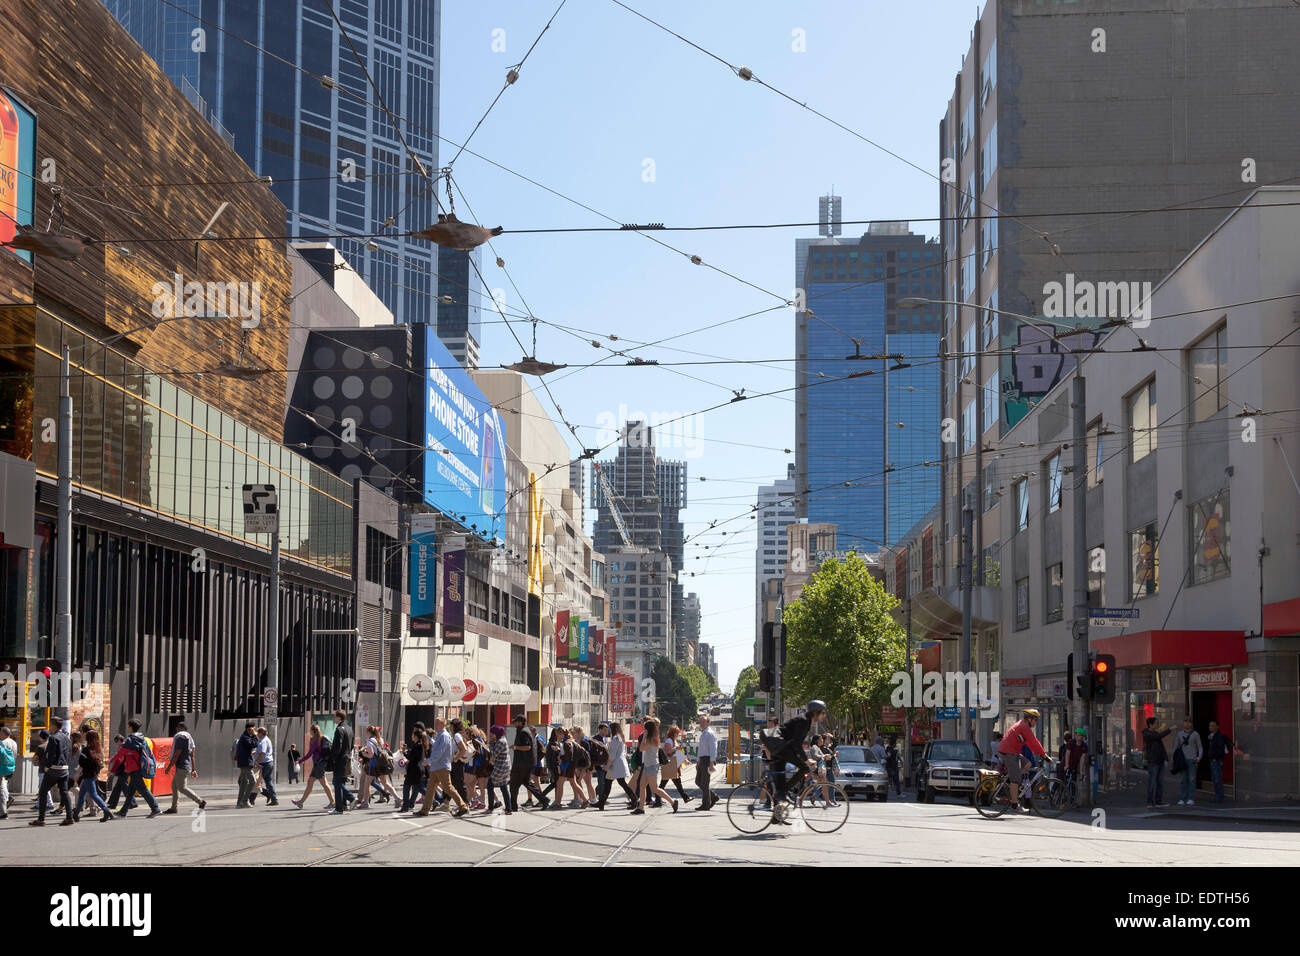 Street view of La Trobe street in Melbourne, Australia - Stock Image